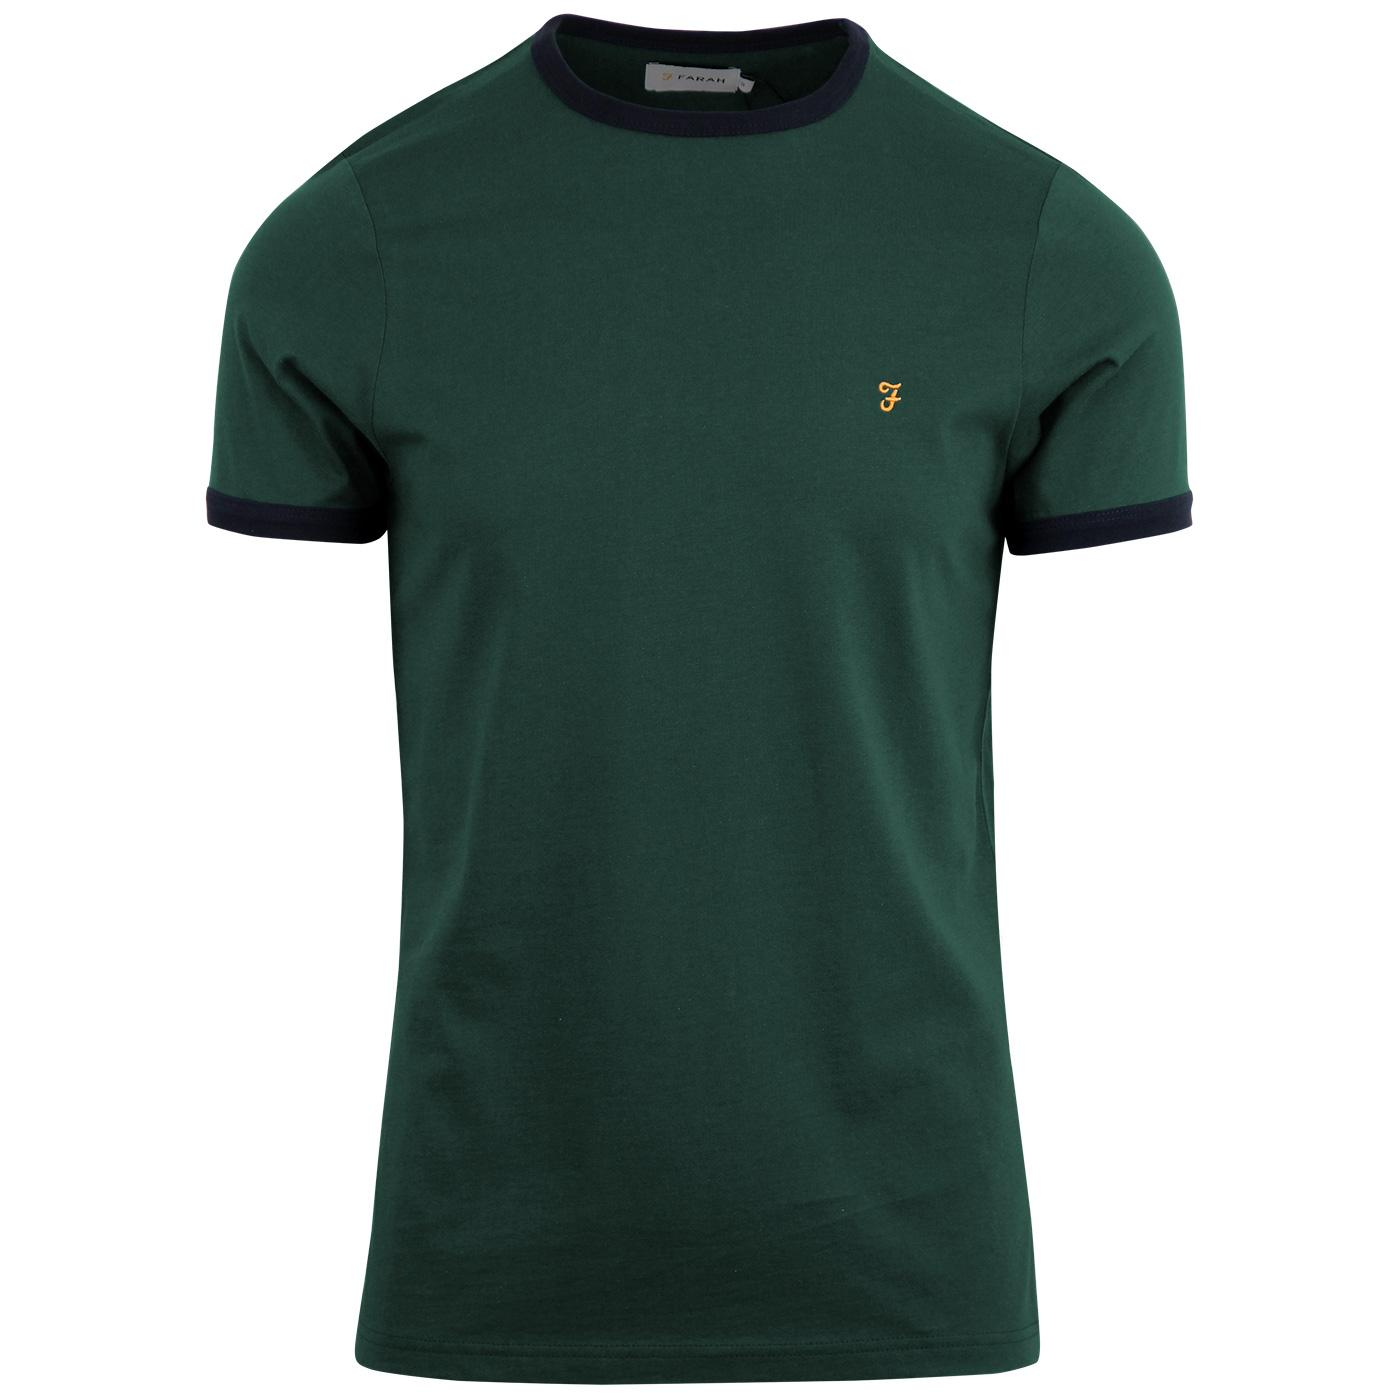 Groves FARAH Retro Mod Ringer Tee - Dark Teal